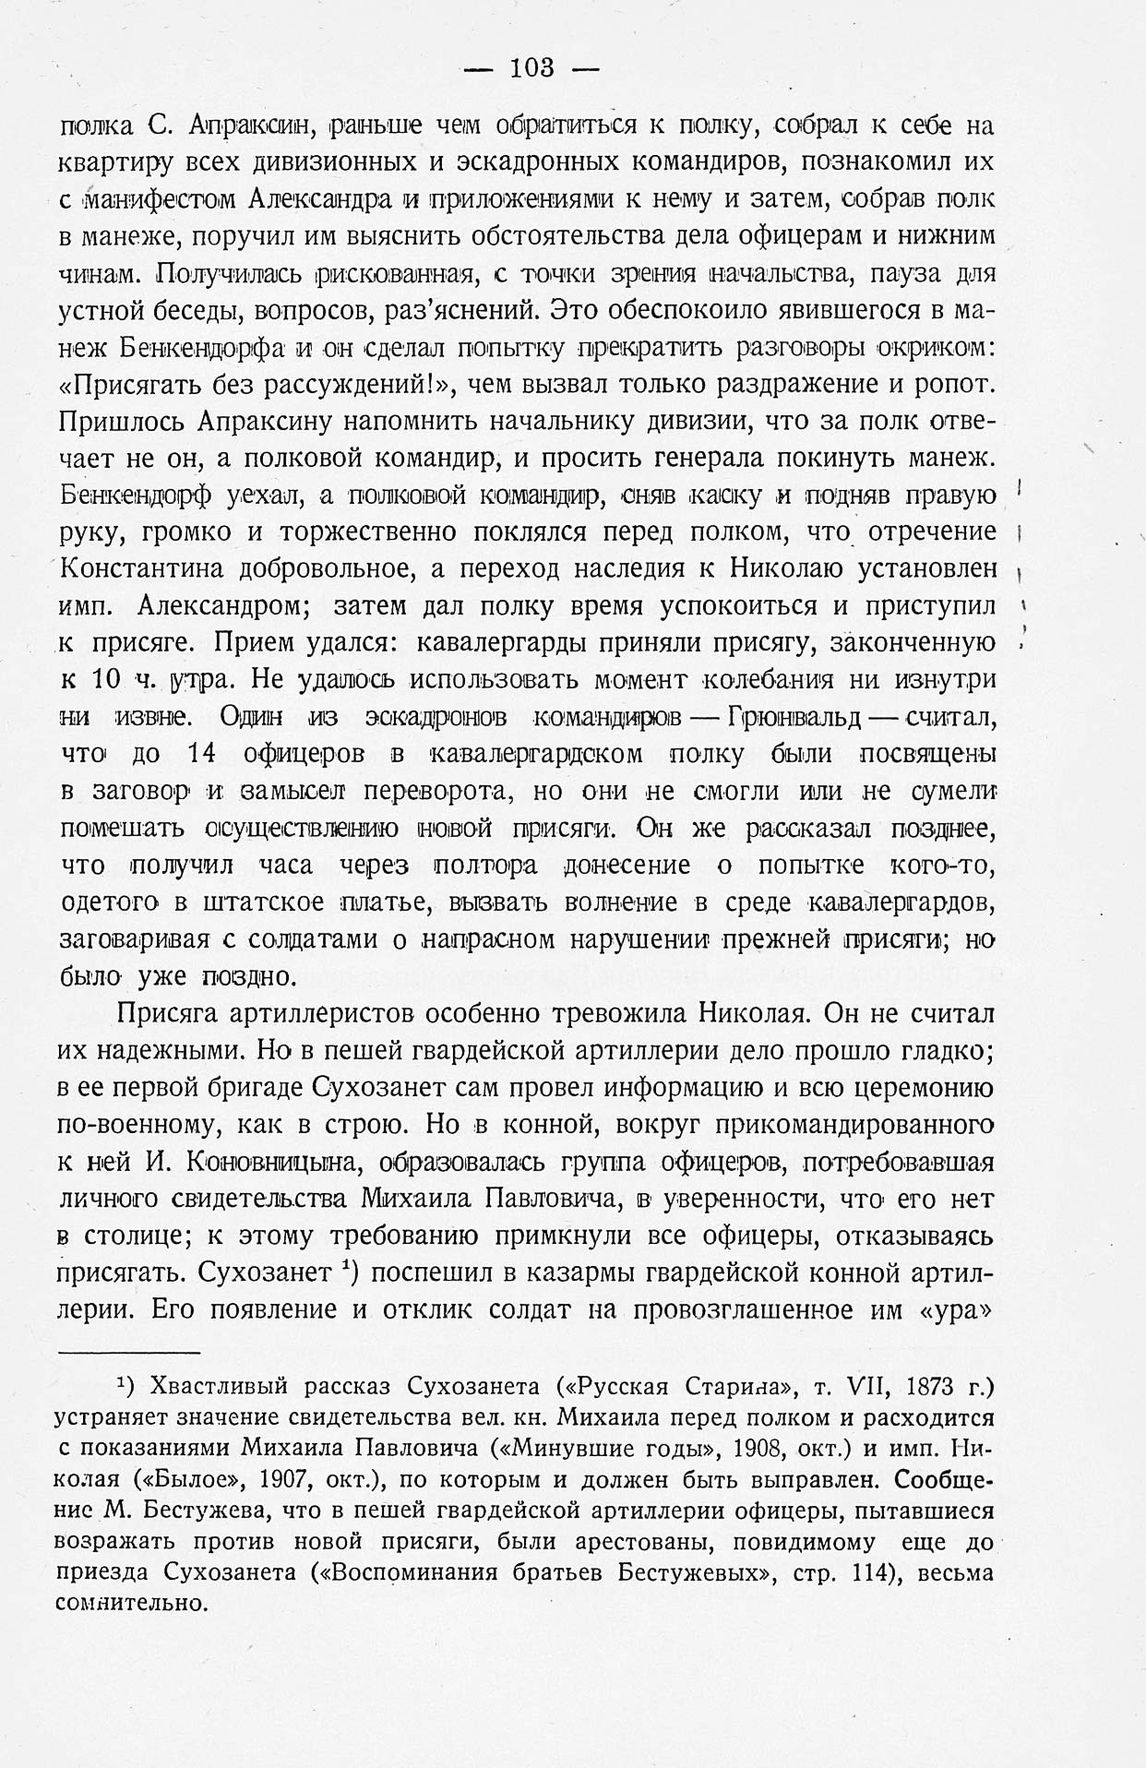 http://elib.shpl.ru/pages/566000/zooms/7